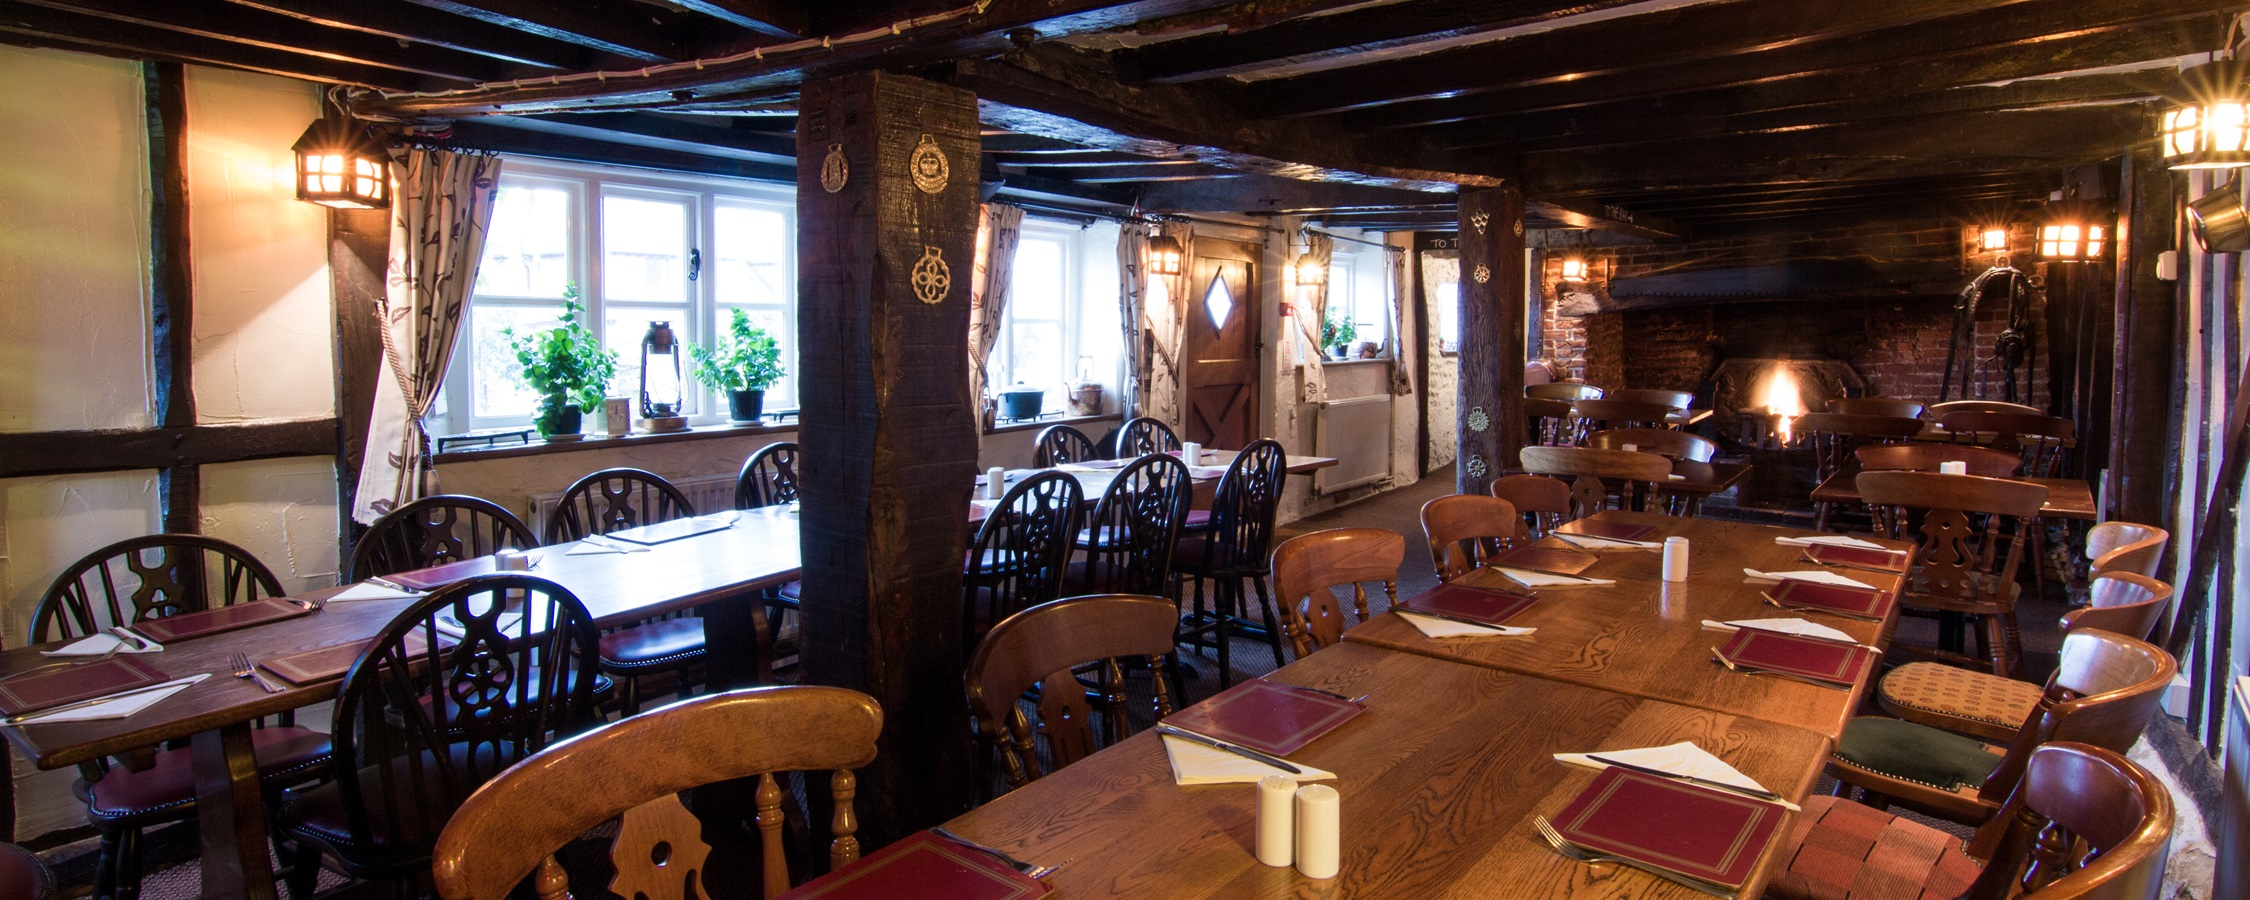 Functions - Characterful restaurant with plenty of space for group bookings